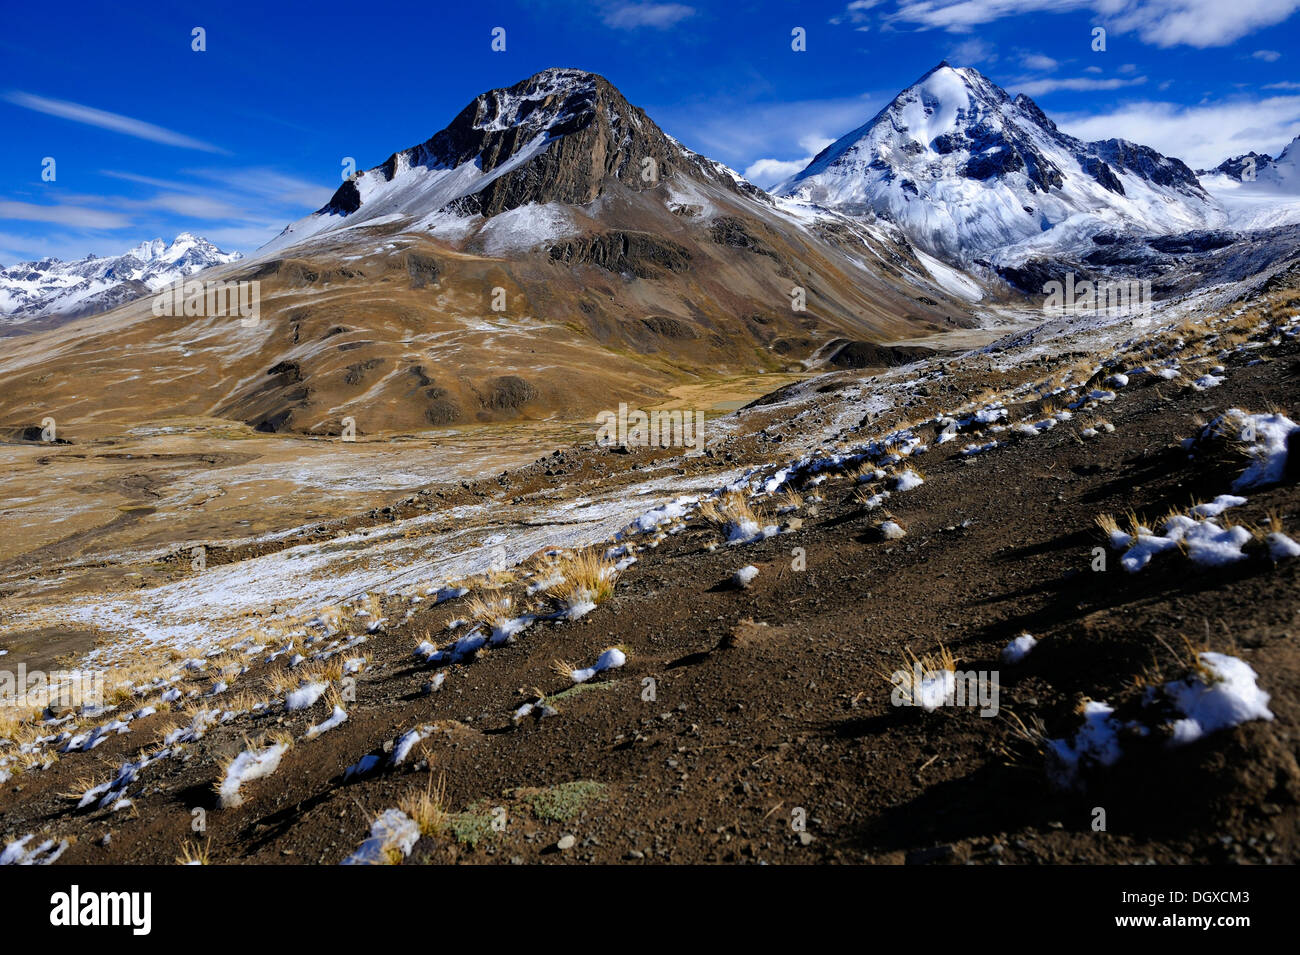 Snow Covered Andes Mountains With A High Plateau At Sunrise La Paz Stock Photo Alamy